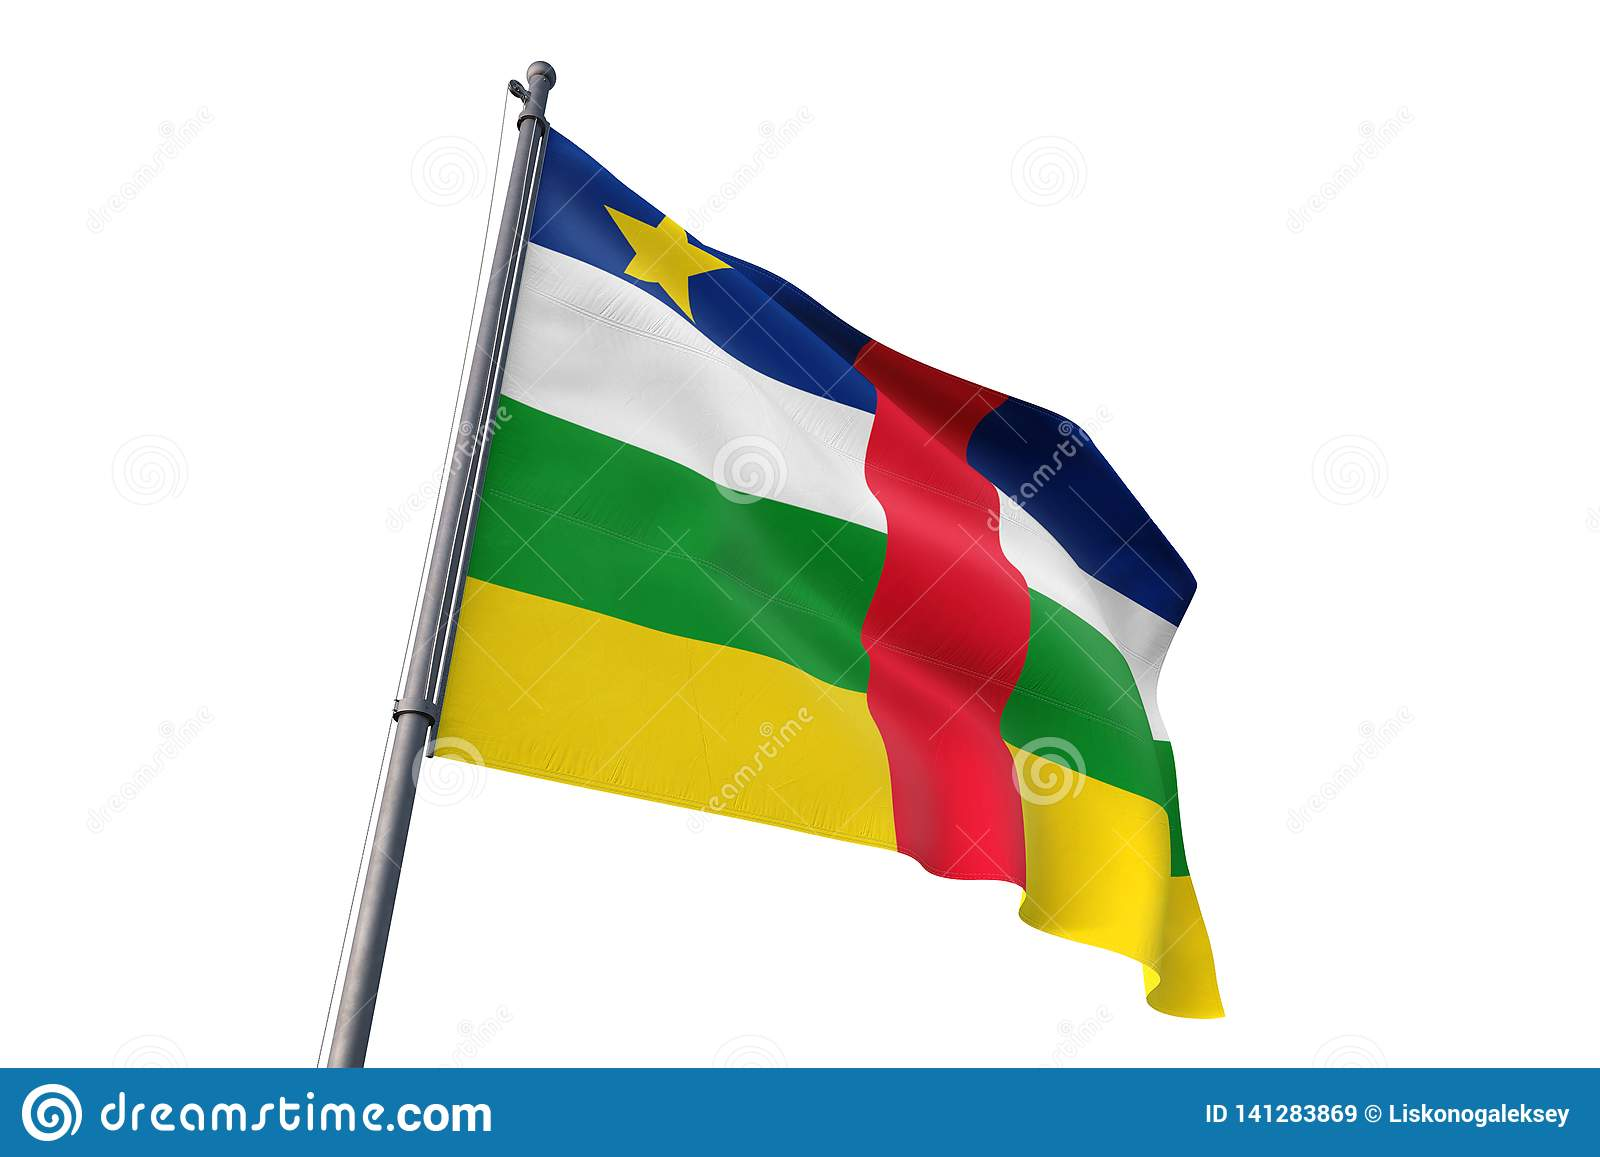 Central African Republic flag waving isolated white background 3D illustration